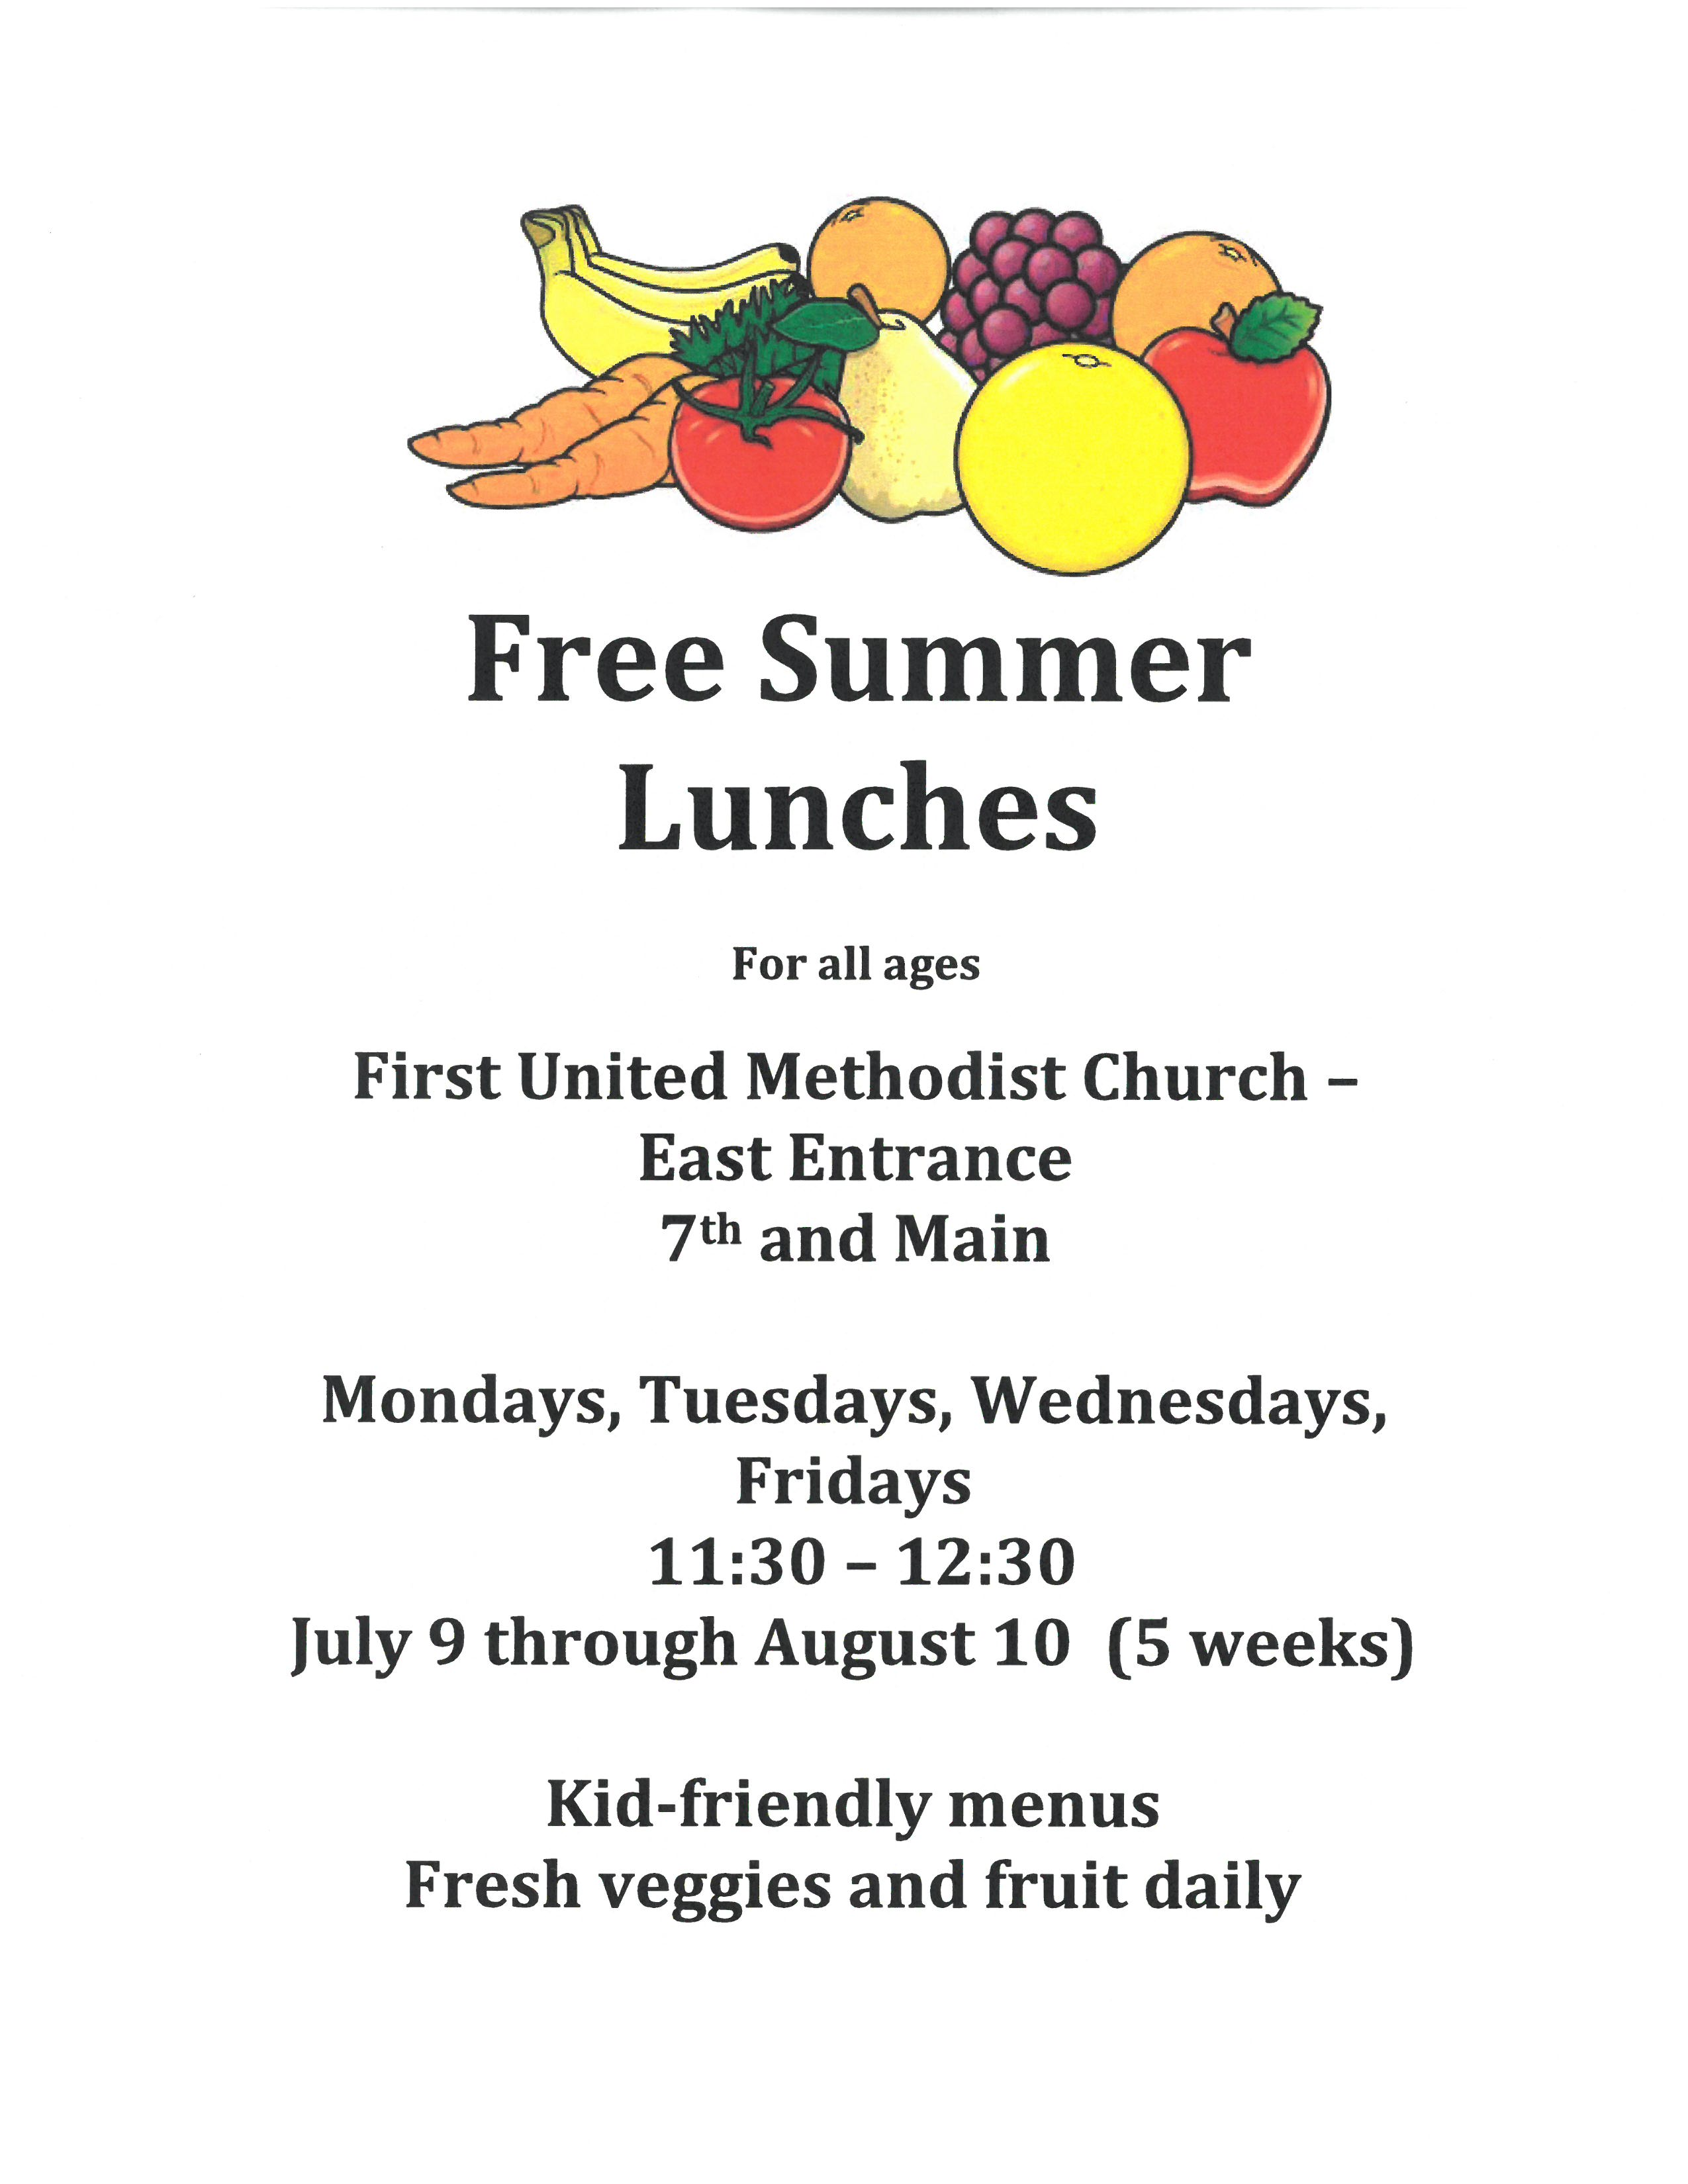 FreeSummerLunches